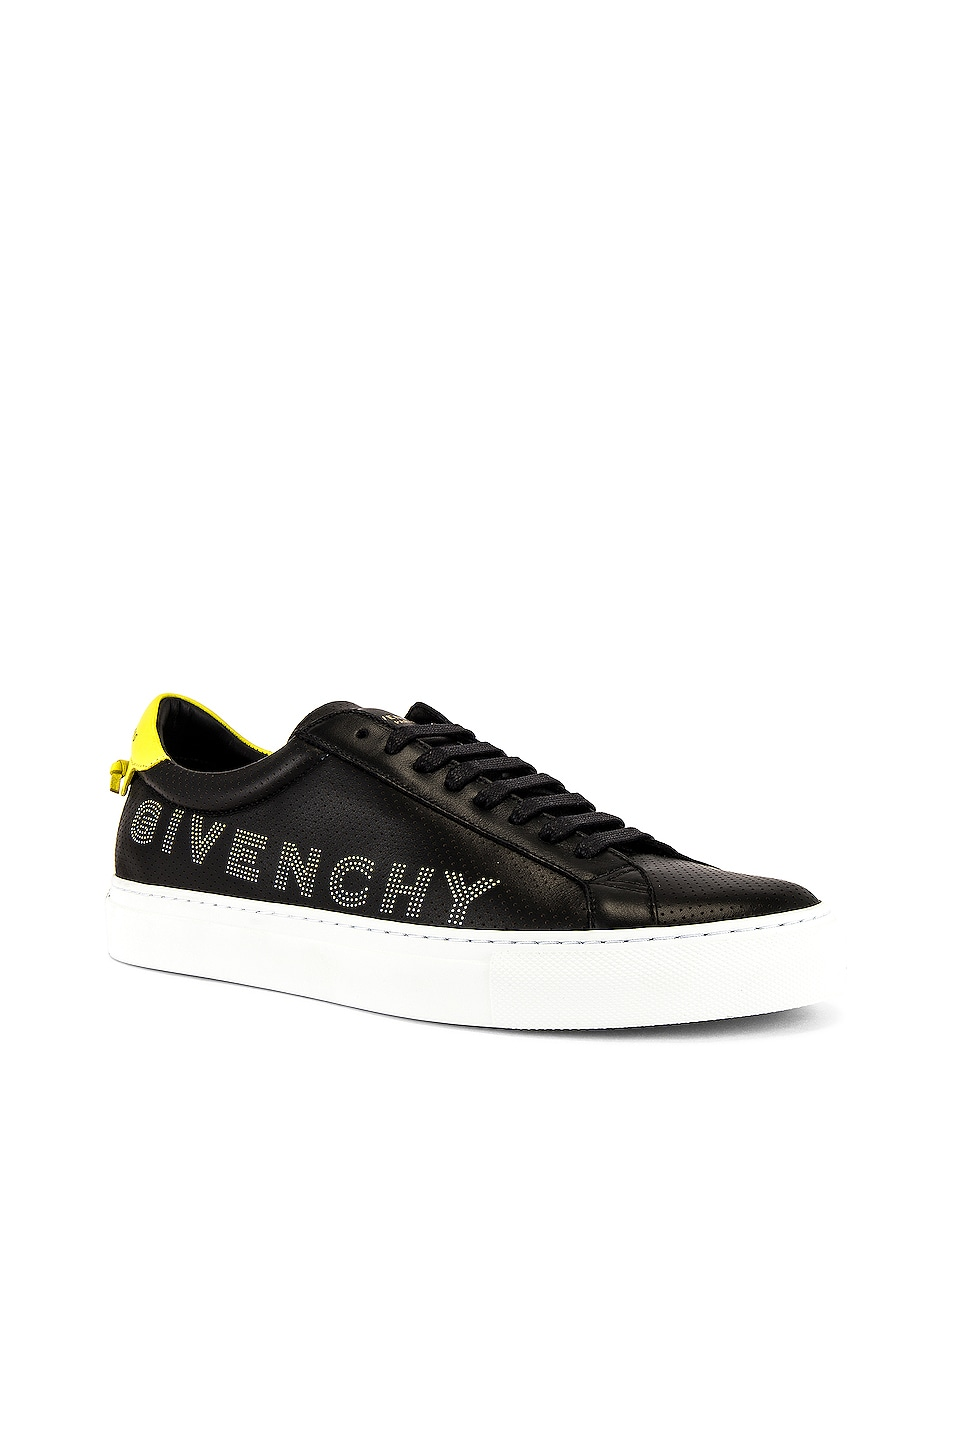 Image 1 of Givenchy Urban Street Low Sneaker in Black & Yellow